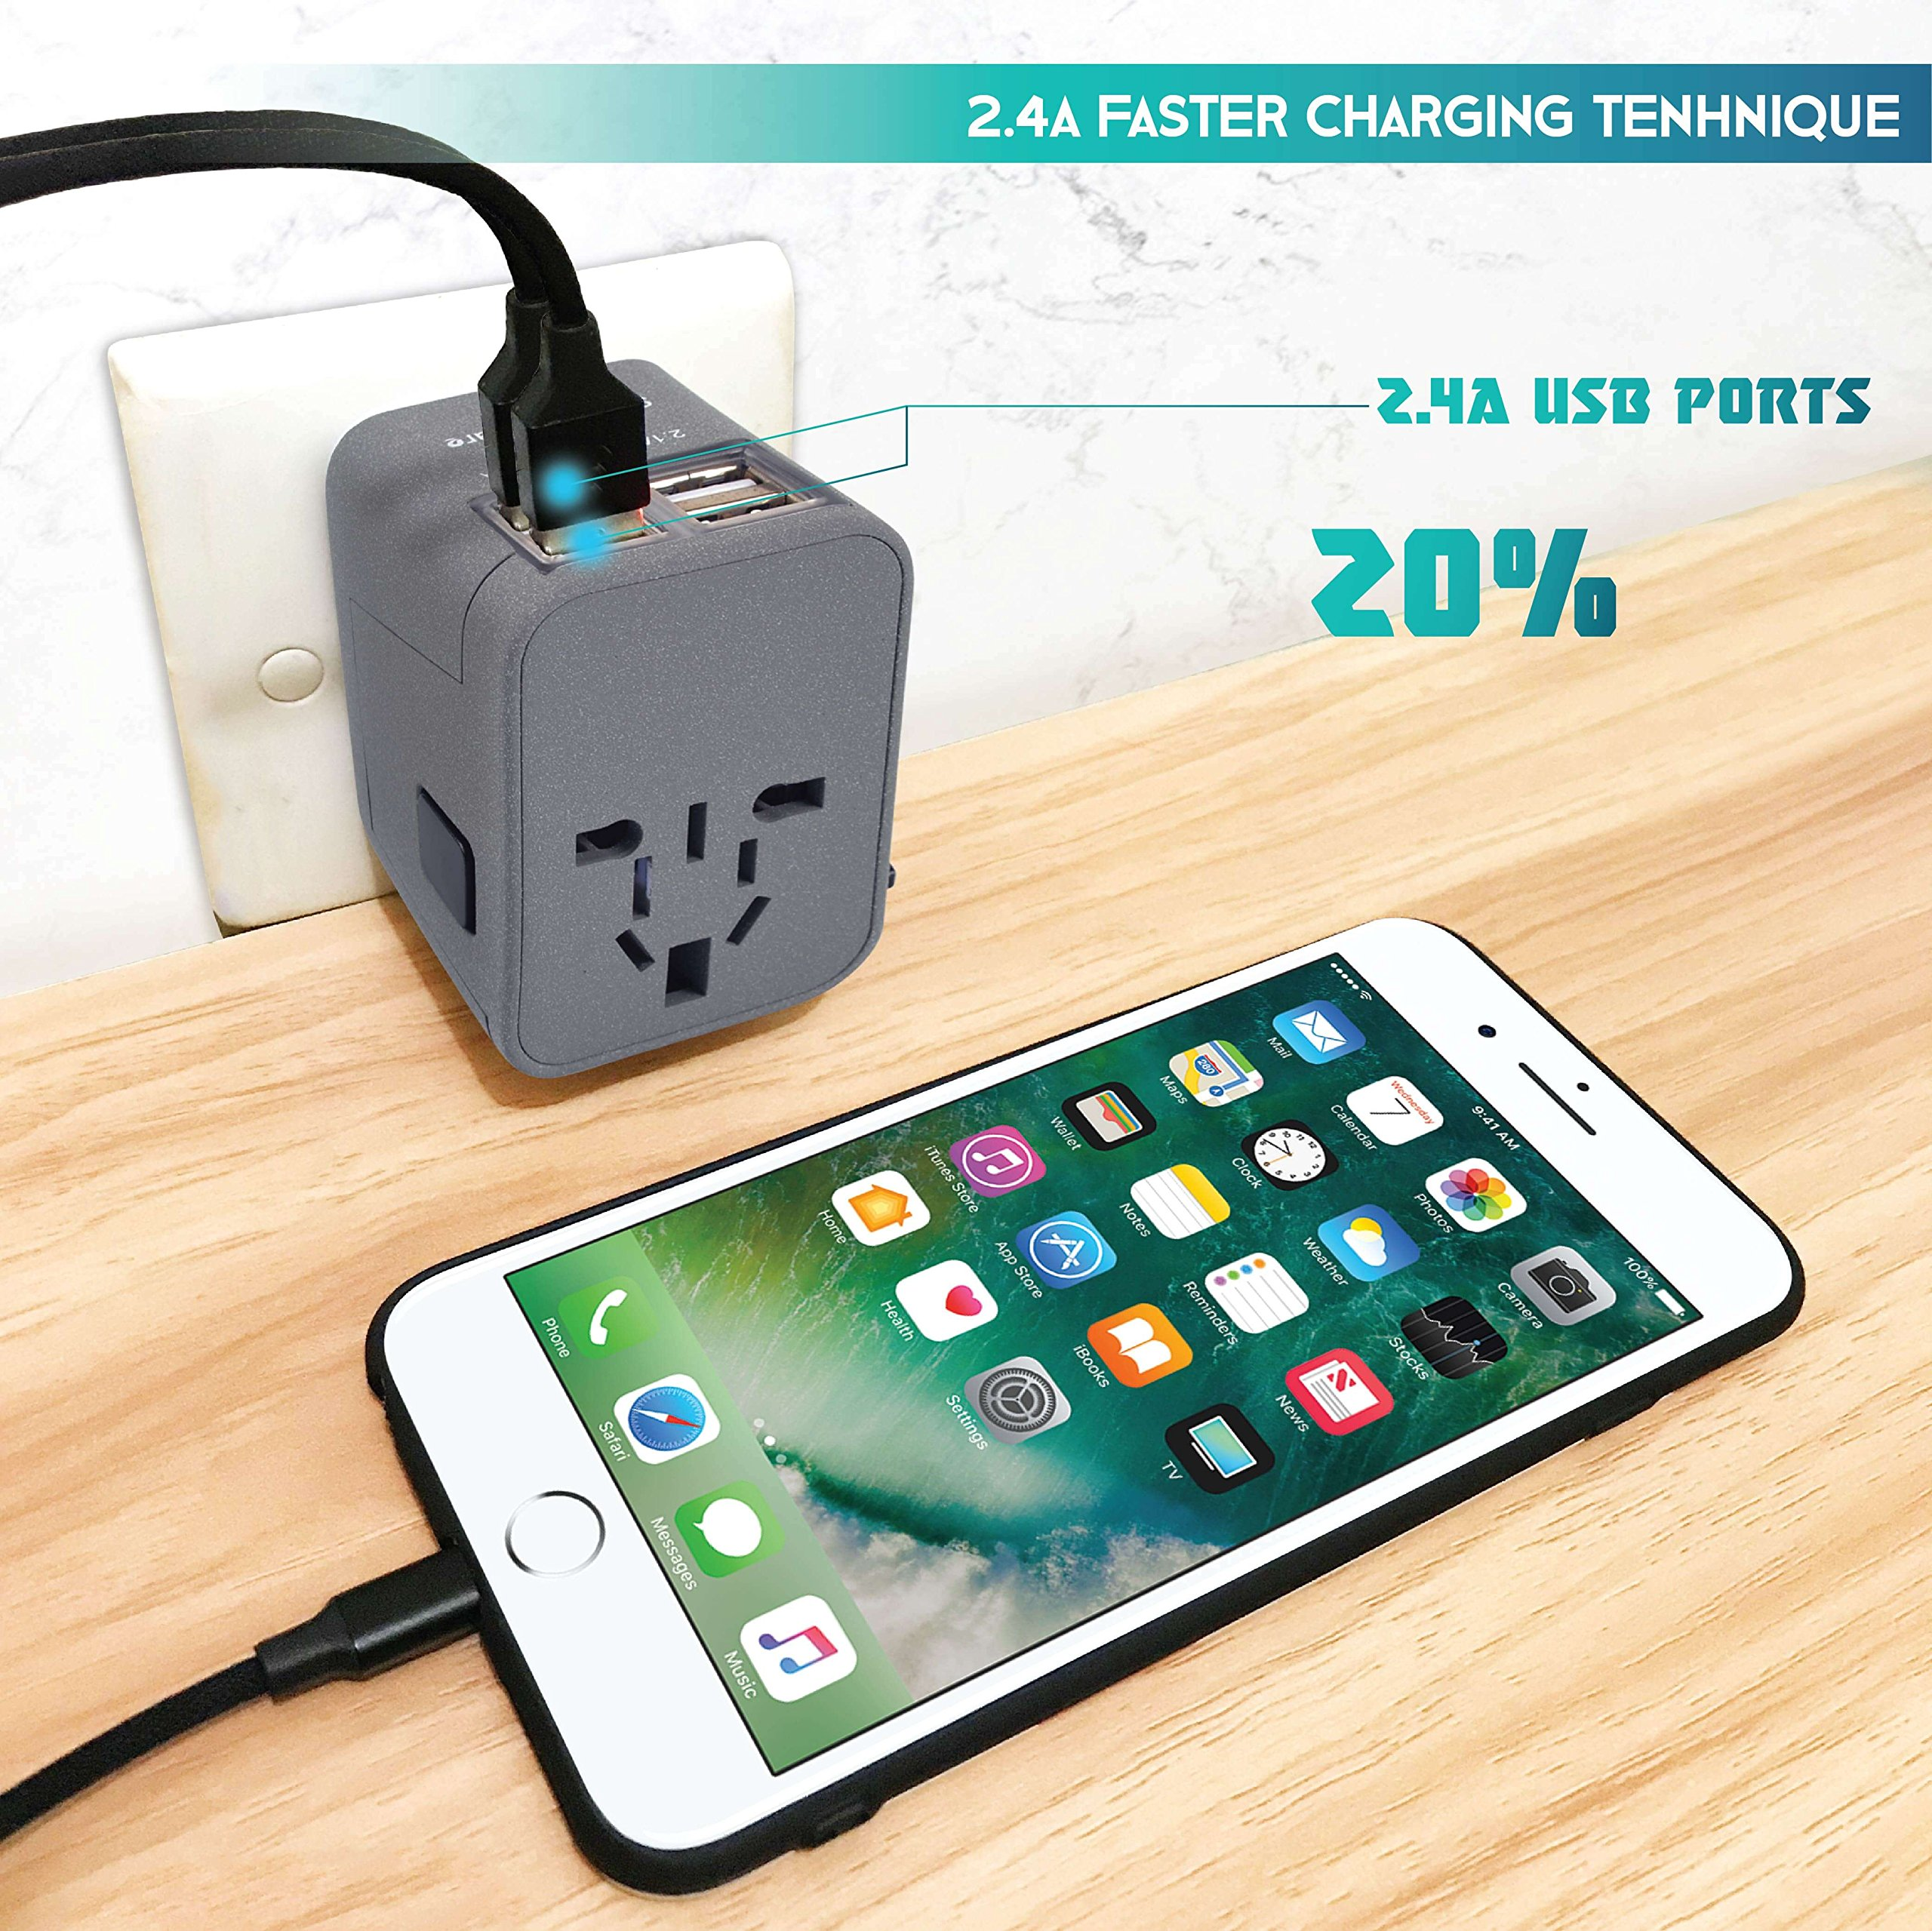 Travel Adapter - Power Plug Outlet - International Travel (Sand Grey)- w/4 USB Ports Work for 150+ Countries - 220 Volt Adapter - Type C A G I for UK Japan China EU Europe European